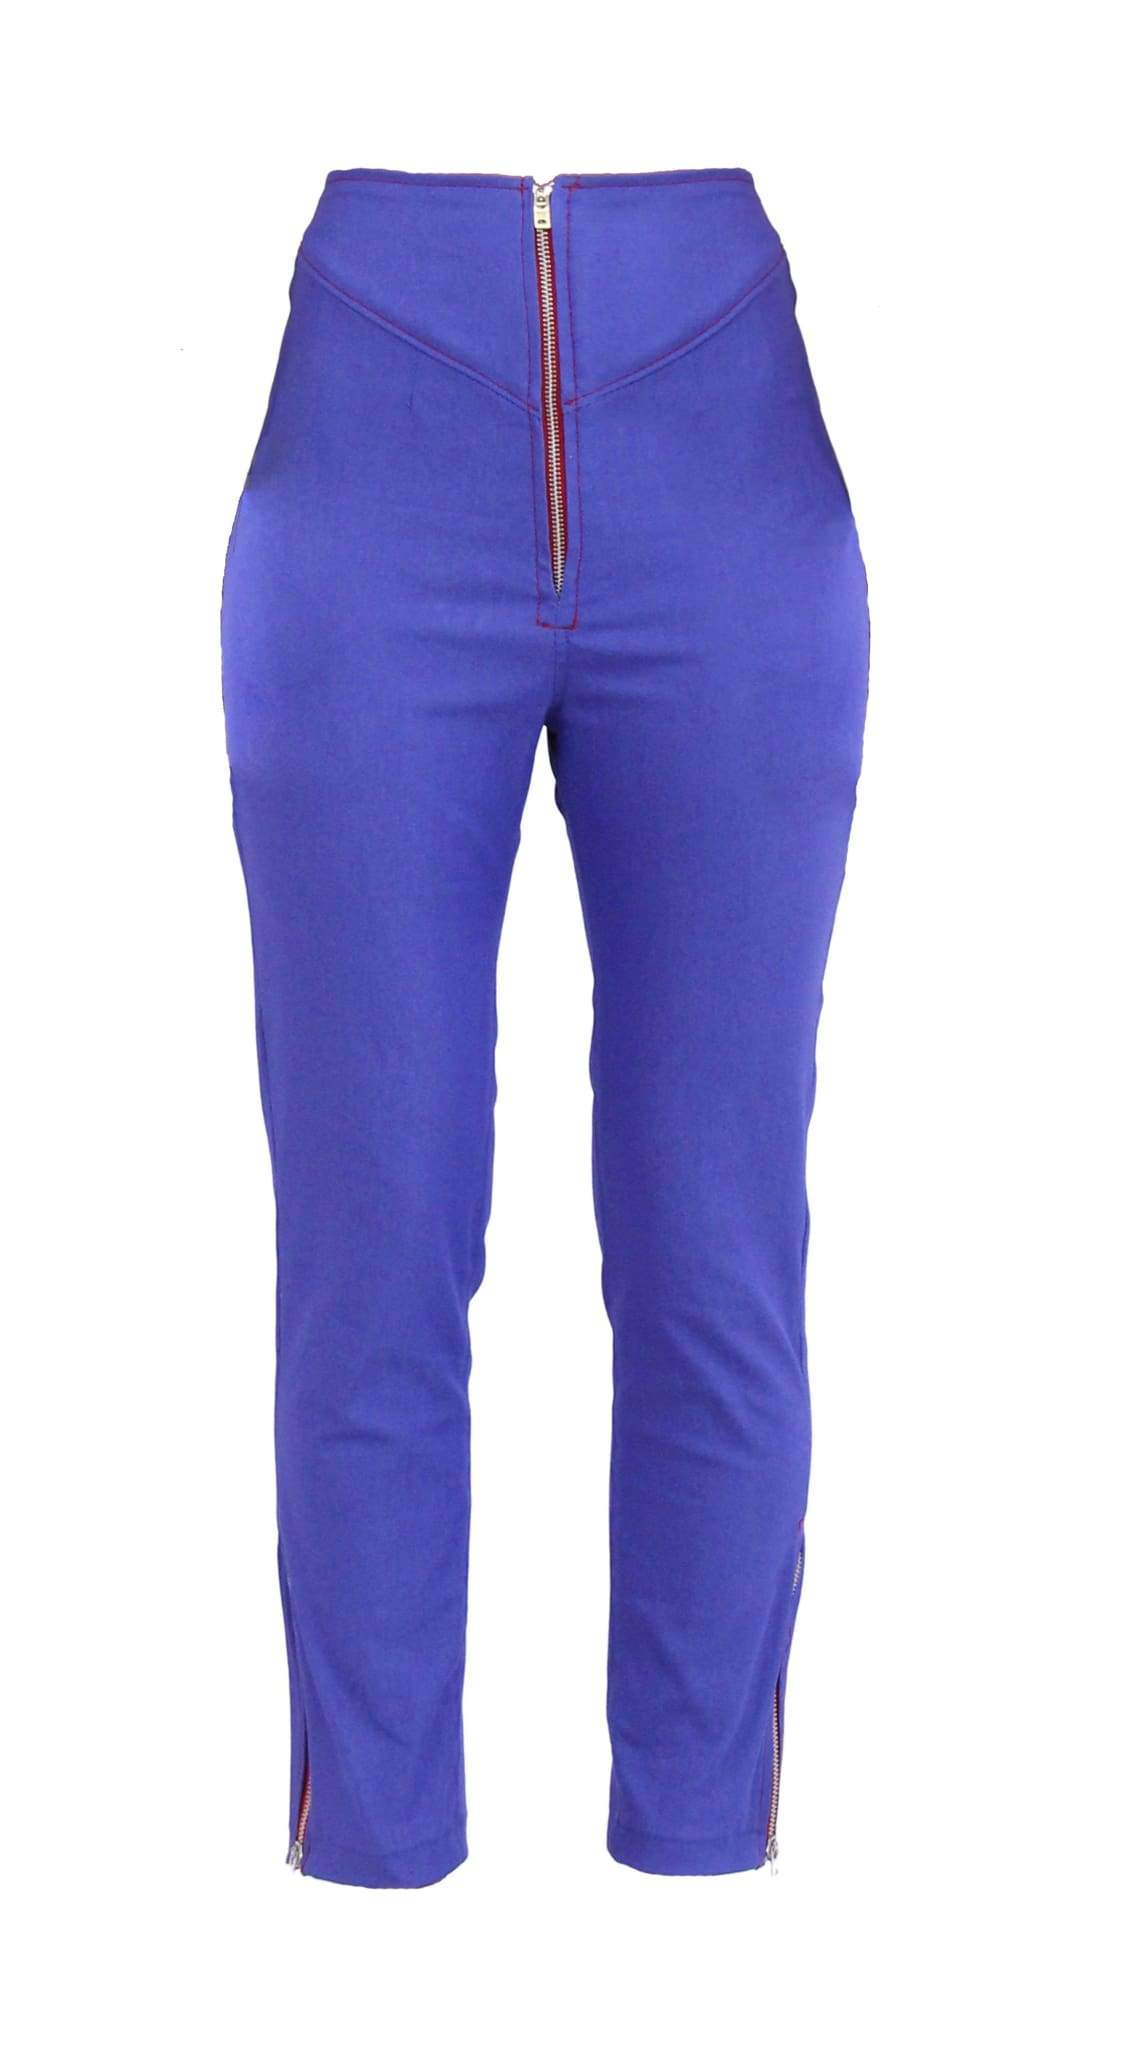 Blue Hi-Waisted Cropped Pants by Meghan Hughes | Nineteenth Amendment